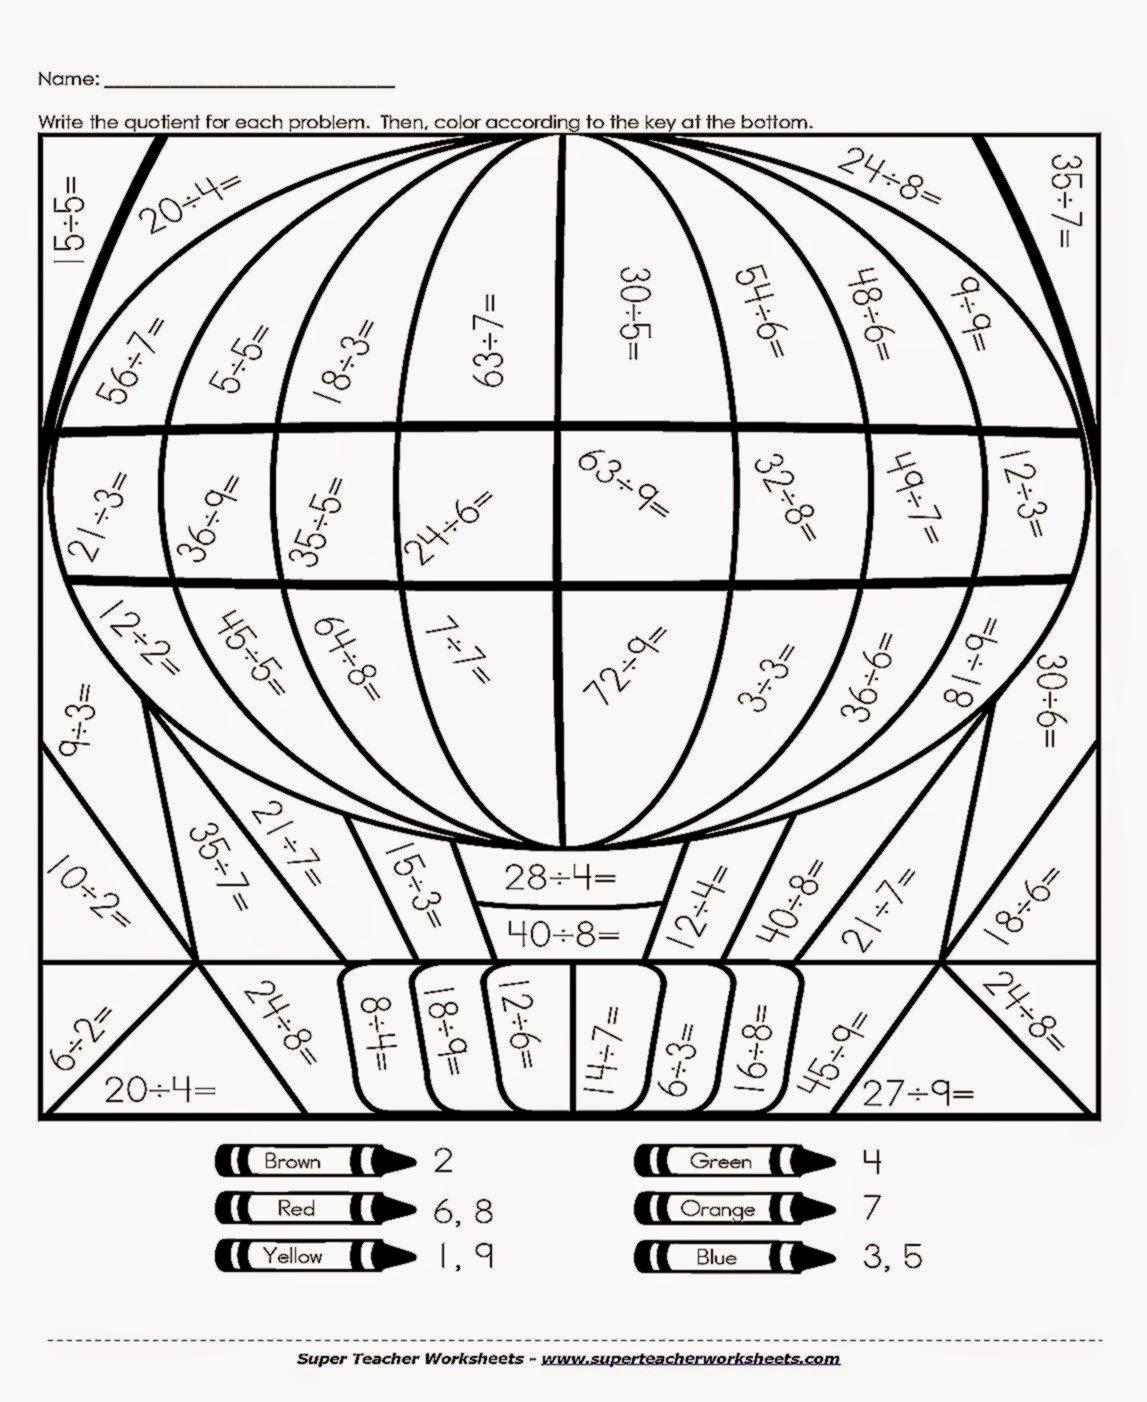 Multiplication Facts Coloring Sheets | Coloring Page